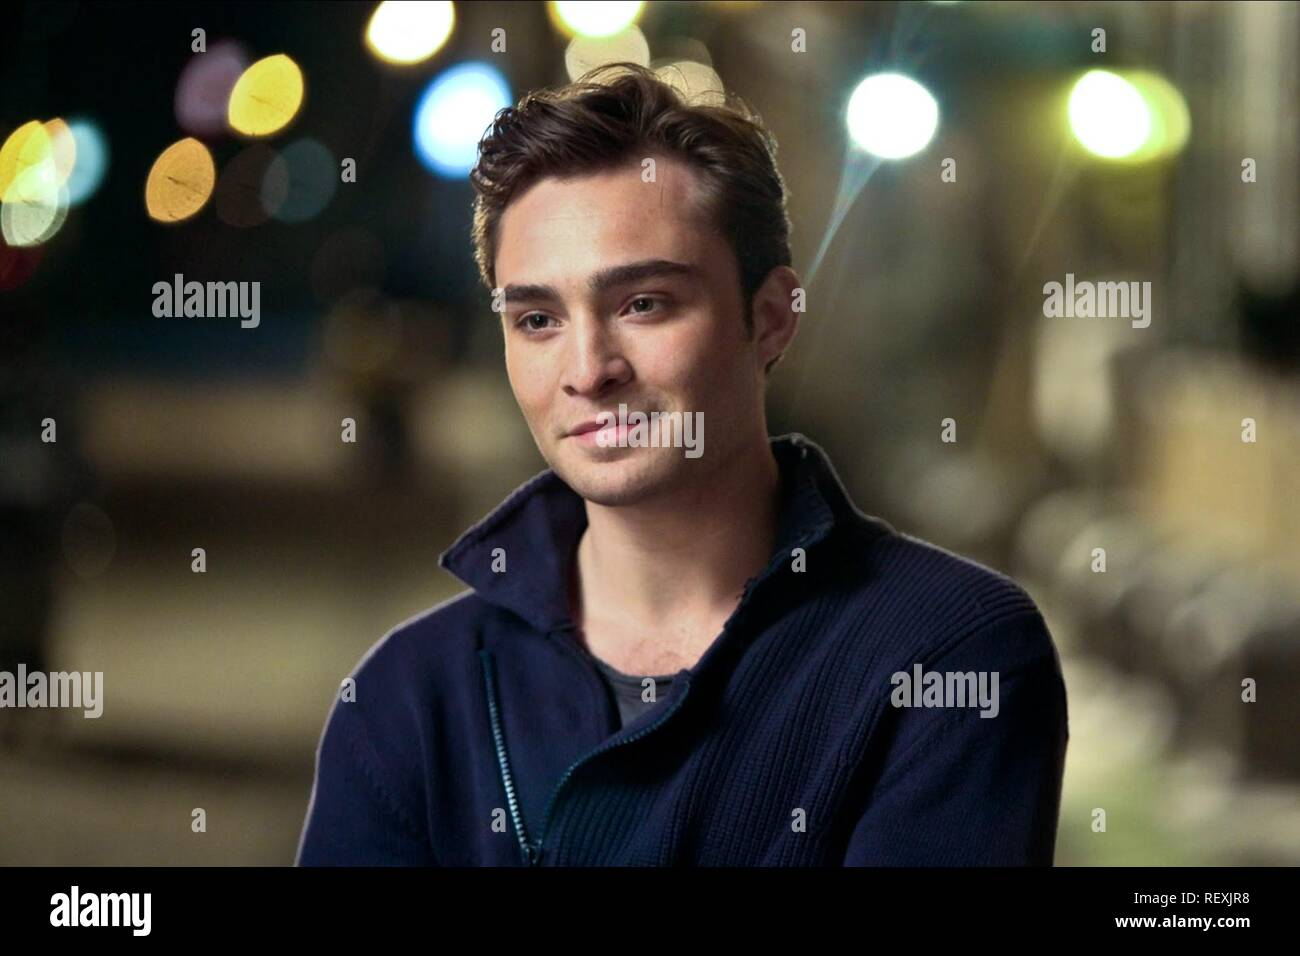 ED WESTWICK THE KITCHEN SINK (2016) - Stock Image